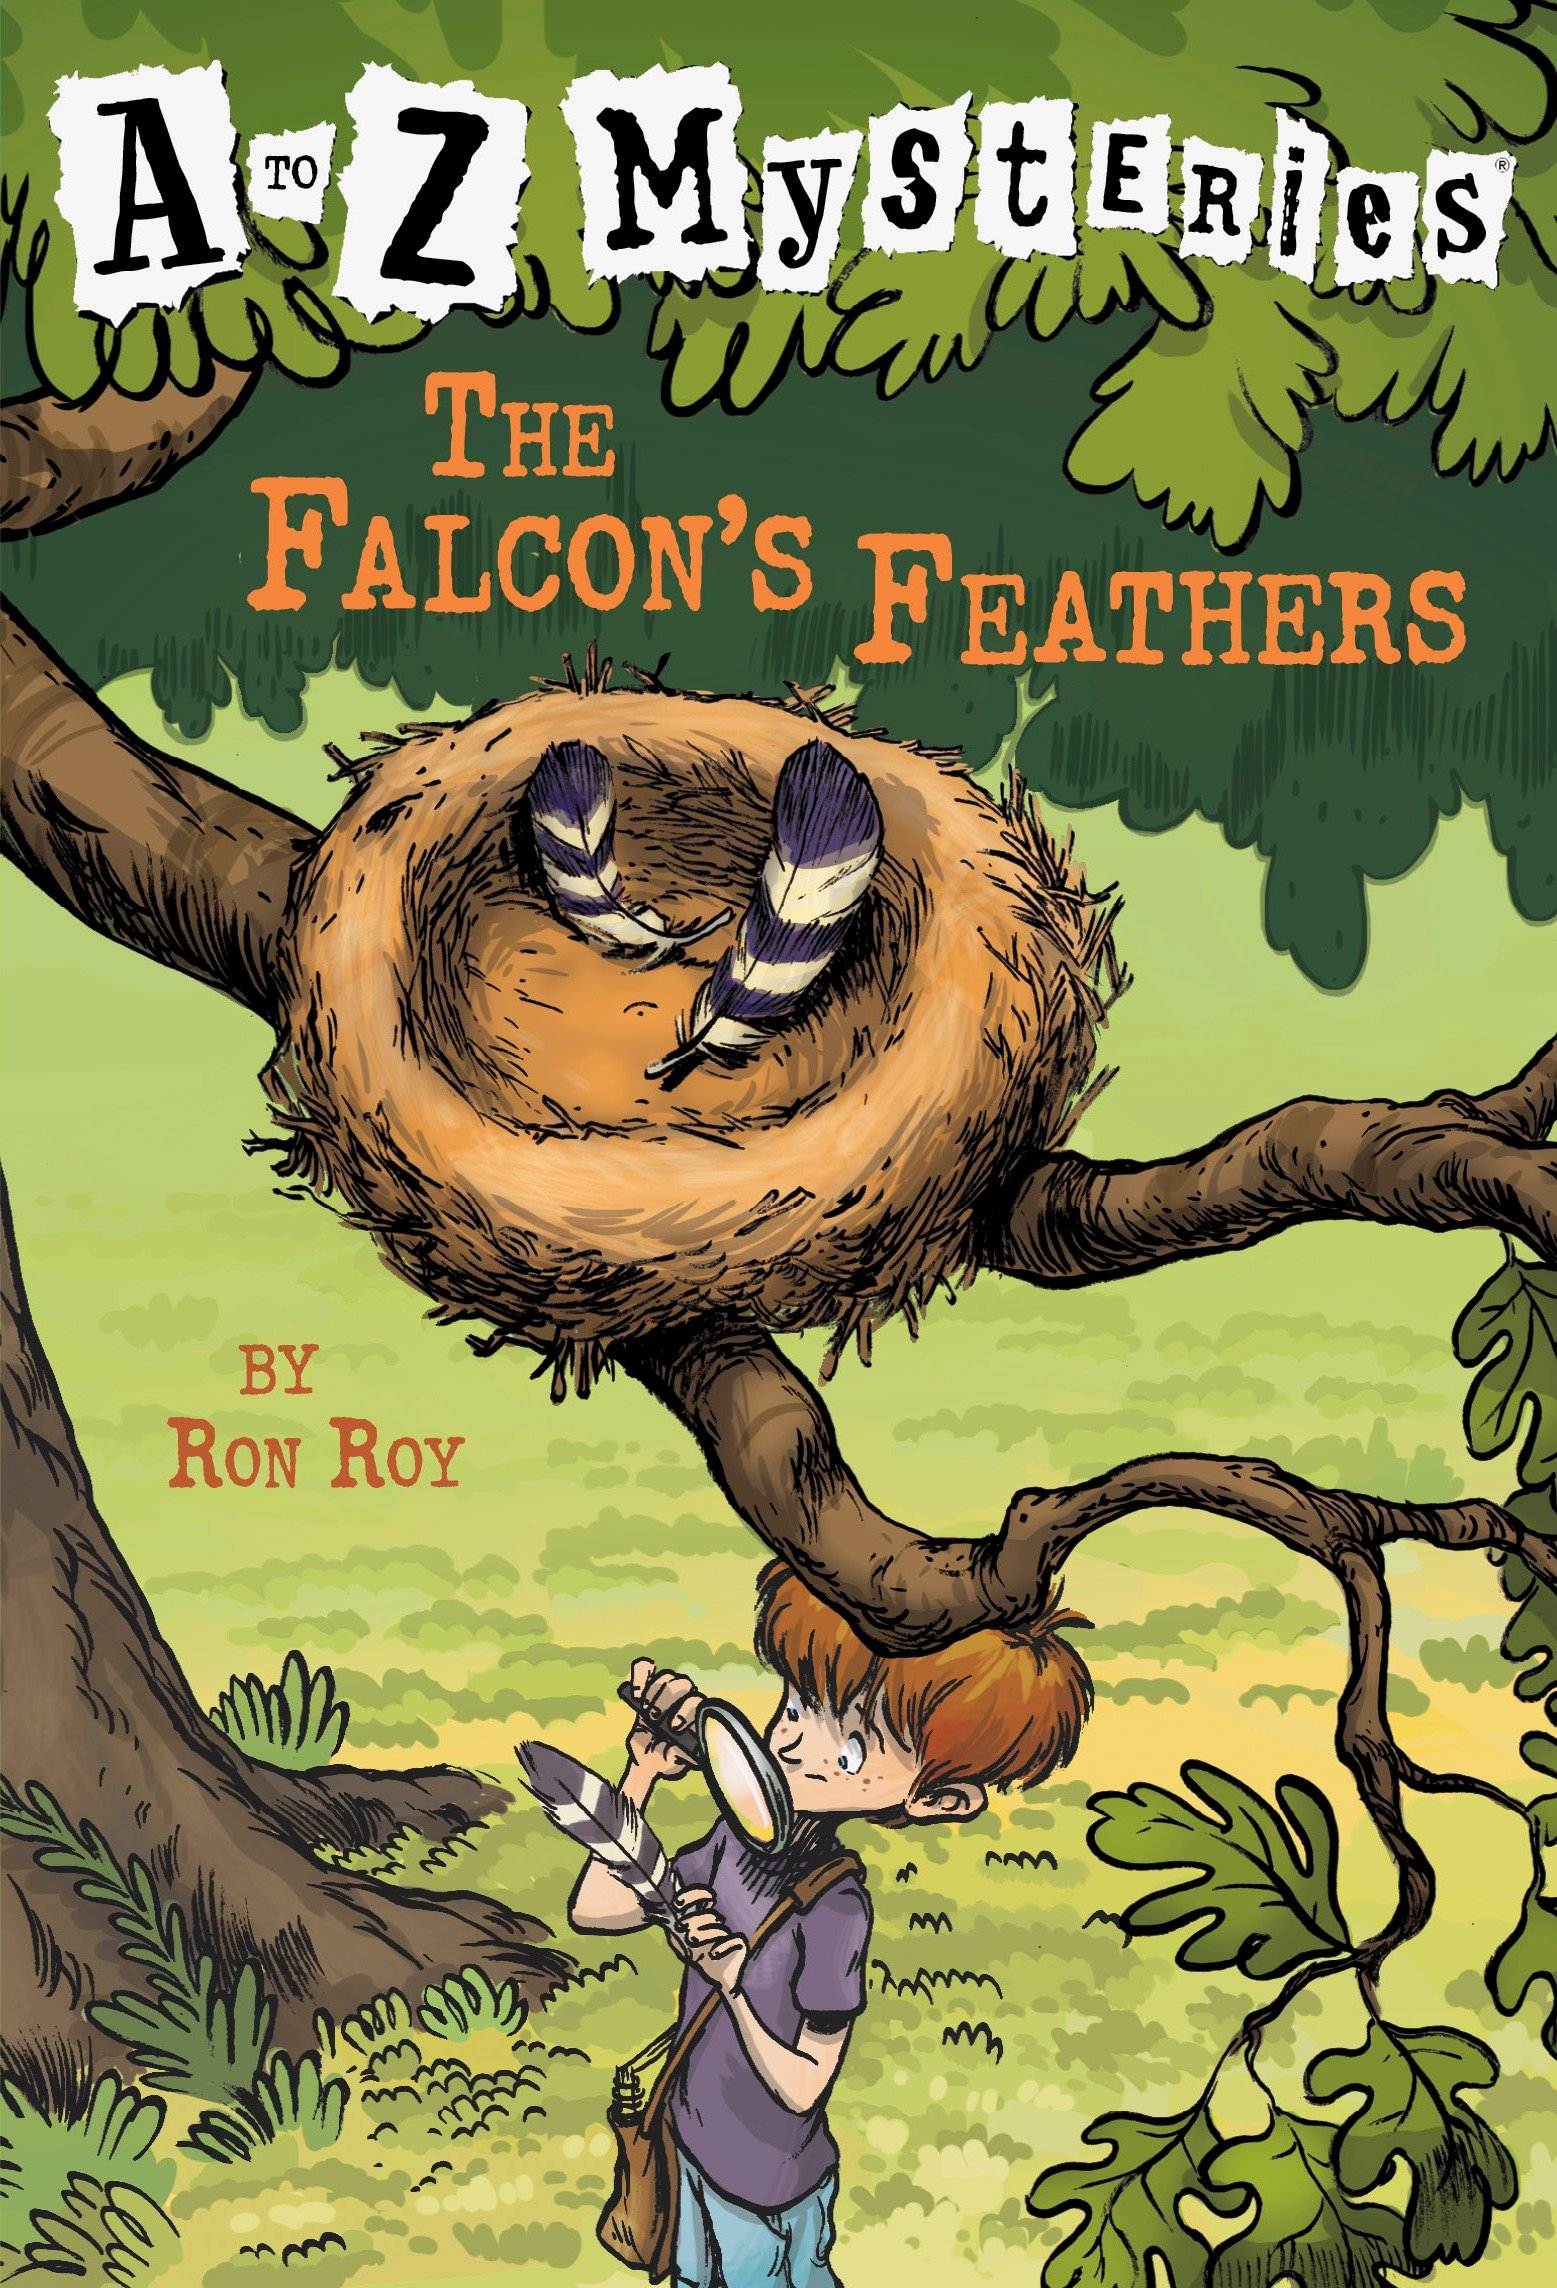 The Falcon's Feathers cover image